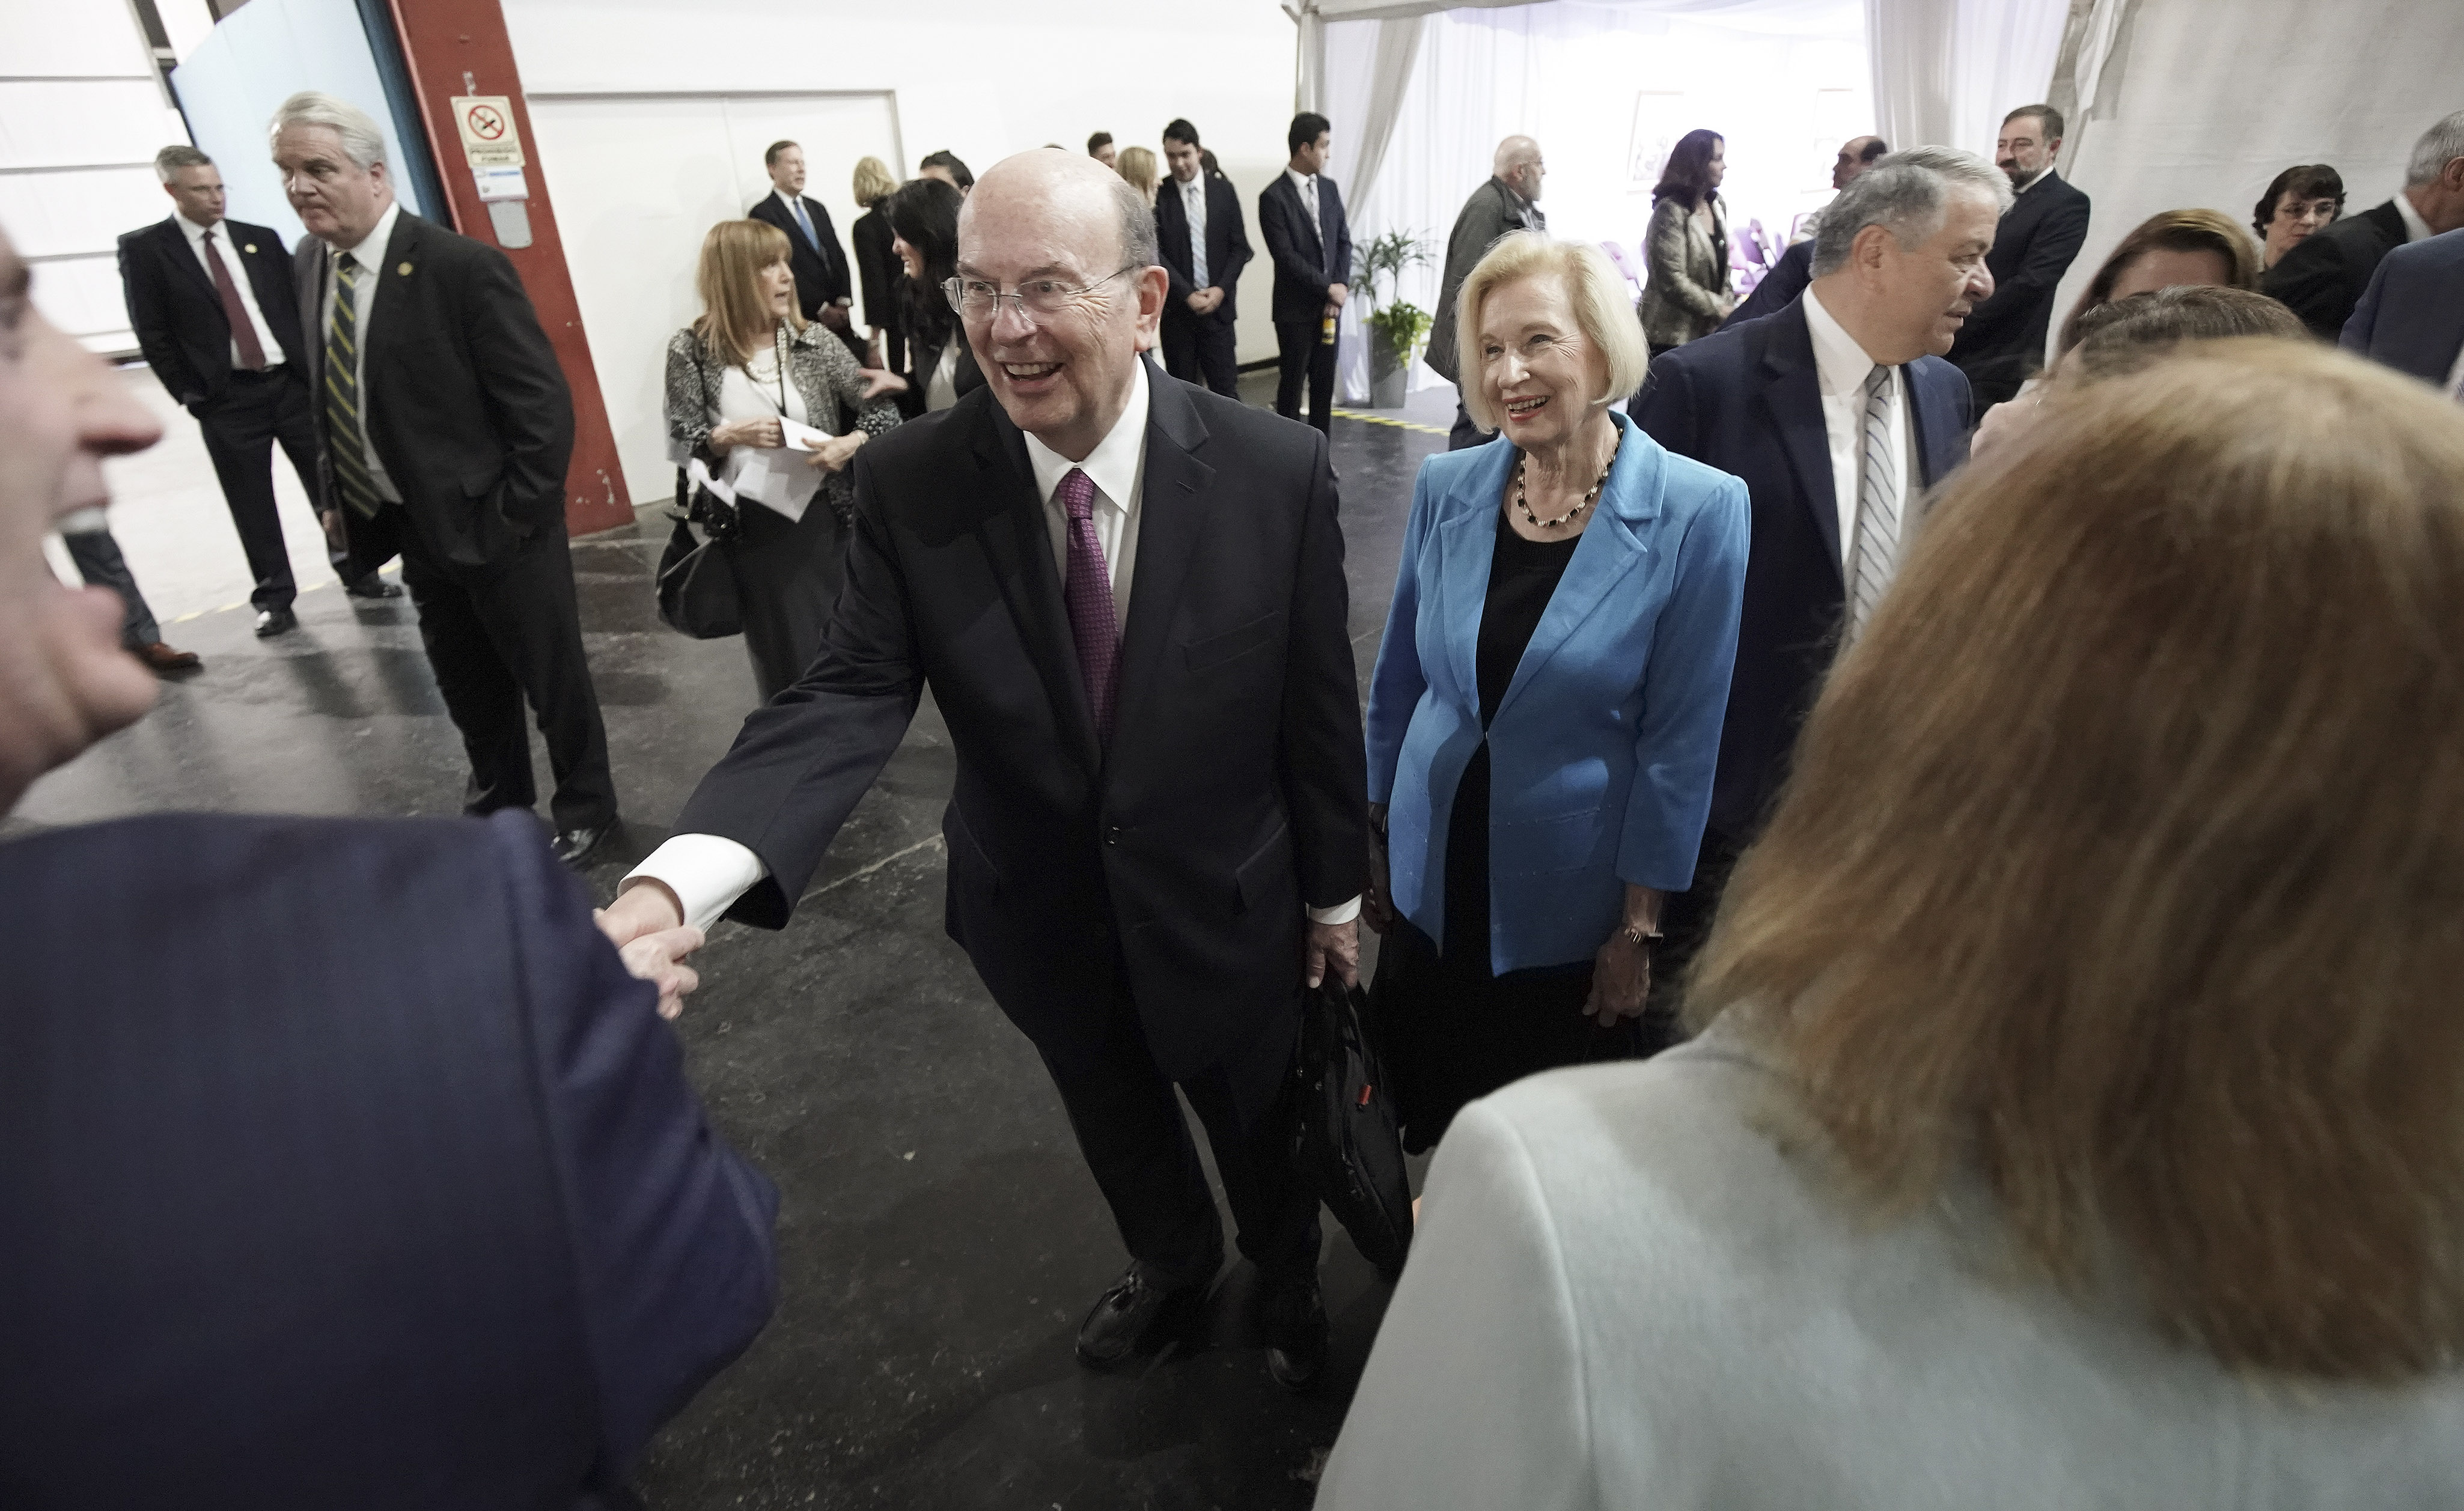 Elder Quentin L. Cook, Quorum of the Twelve Apostles of The Church of Jesus Christ of Latter-day Saints, and his wife, Sister Mary Cook, greet attendees before a devotional in Buenos Aires, Argentina, on Wednesday, Aug. 28, 2019.